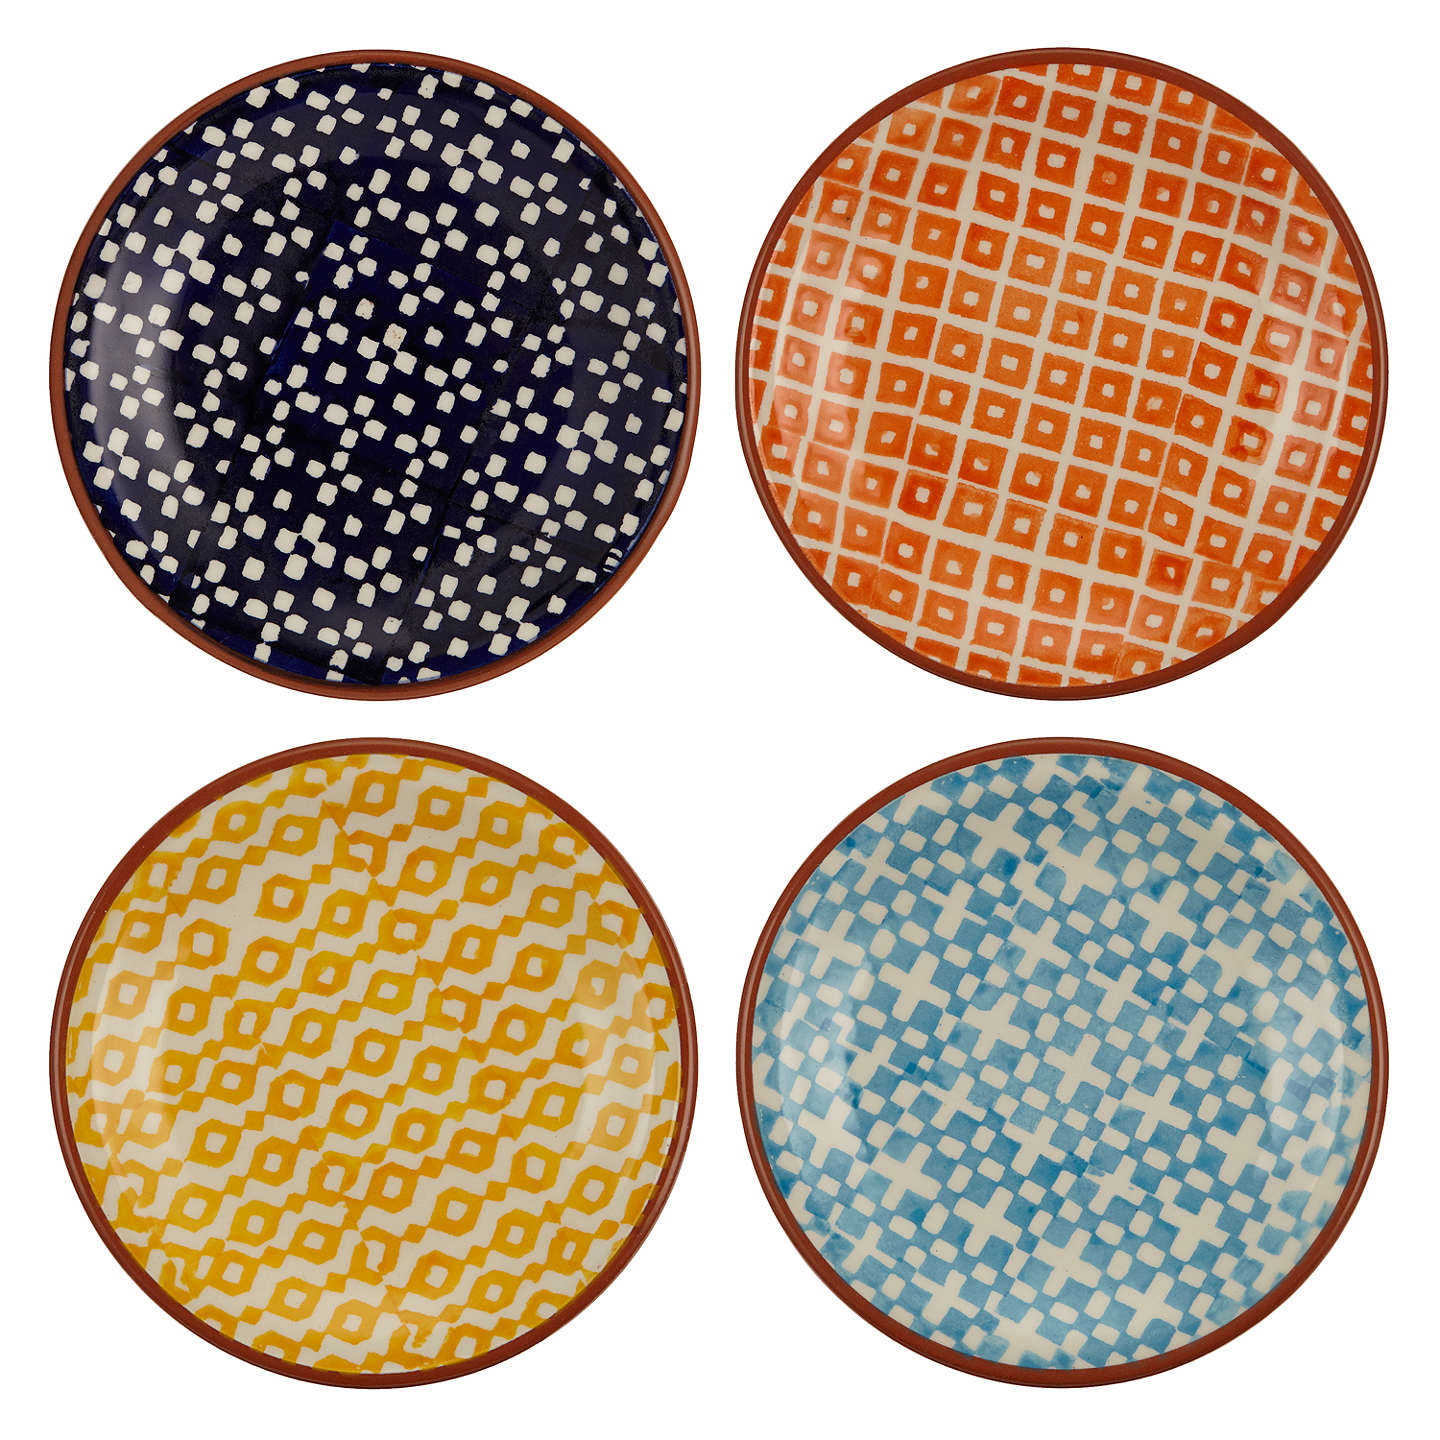 BuyJohn Lewis Alfresco Tapas Plates Patterned Set of 4 Online at johnlewis.com ...  sc 1 st  John Lewis & John Lewis Alfresco Tapas Plates Patterned Set of 4 at John Lewis